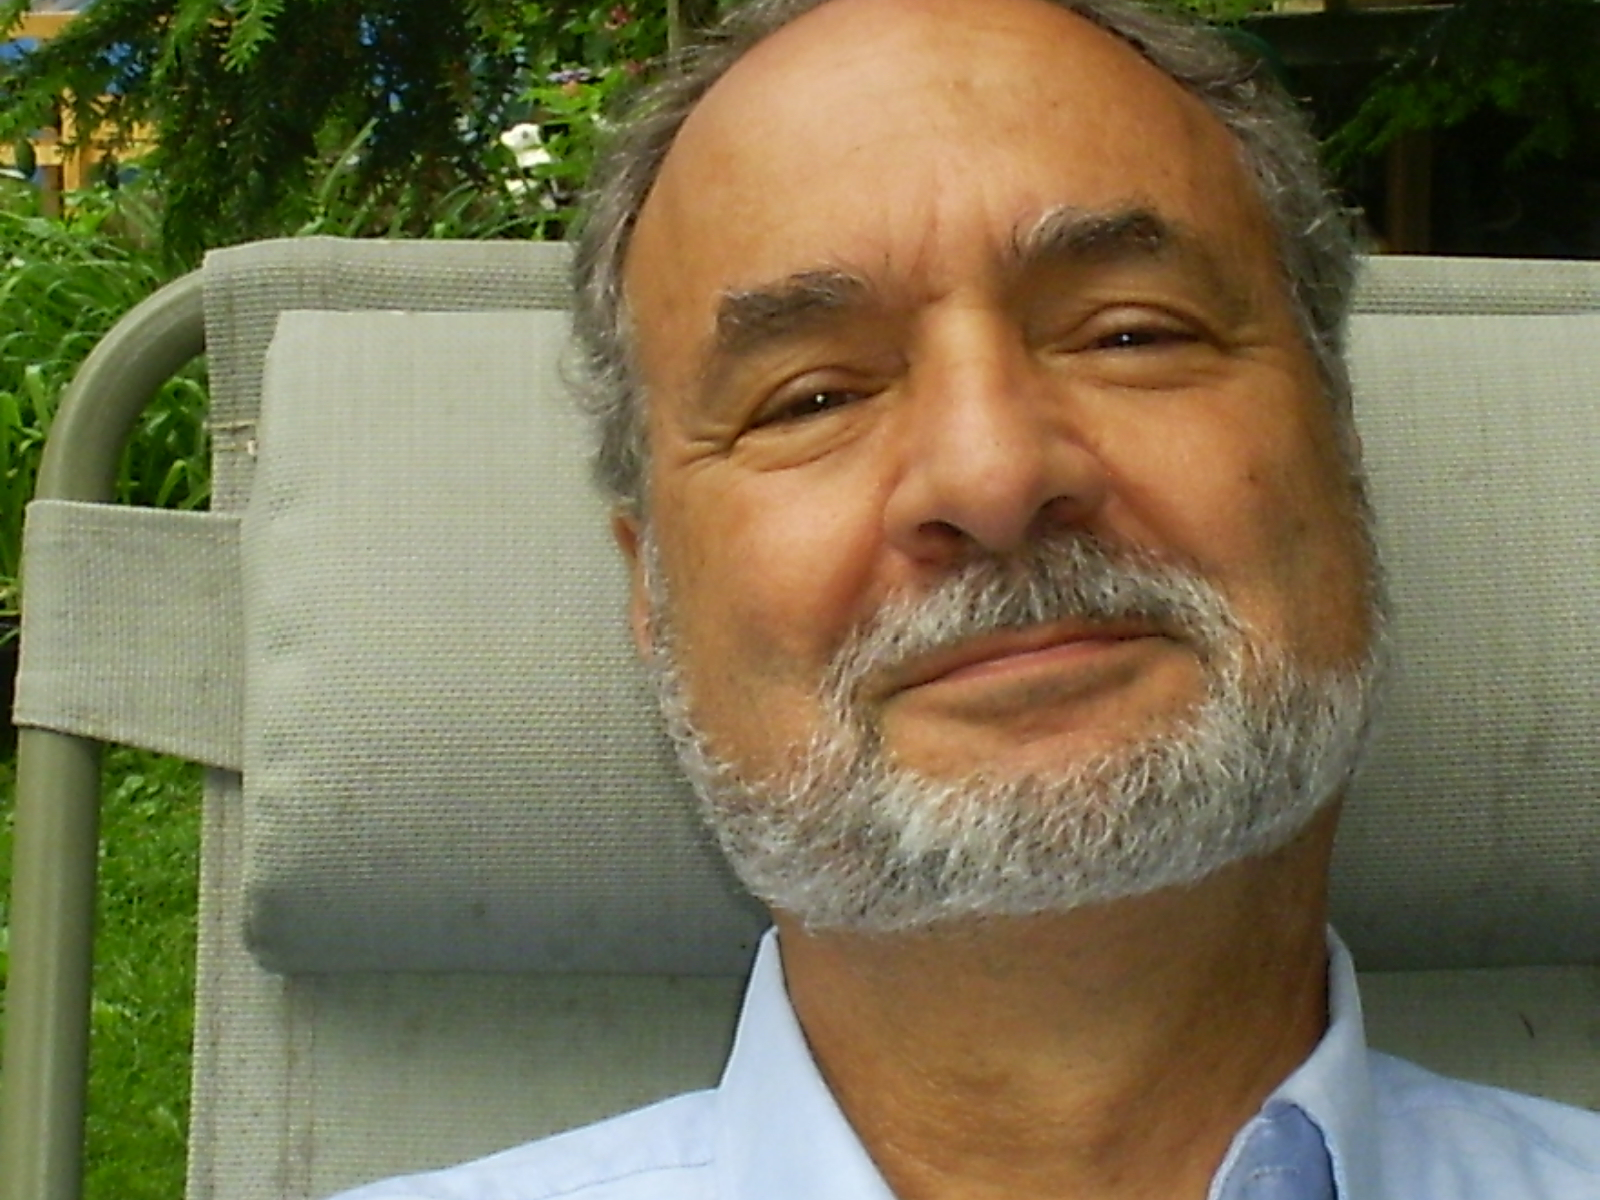 Manimas Offers Electoral Vote Donation to DNC